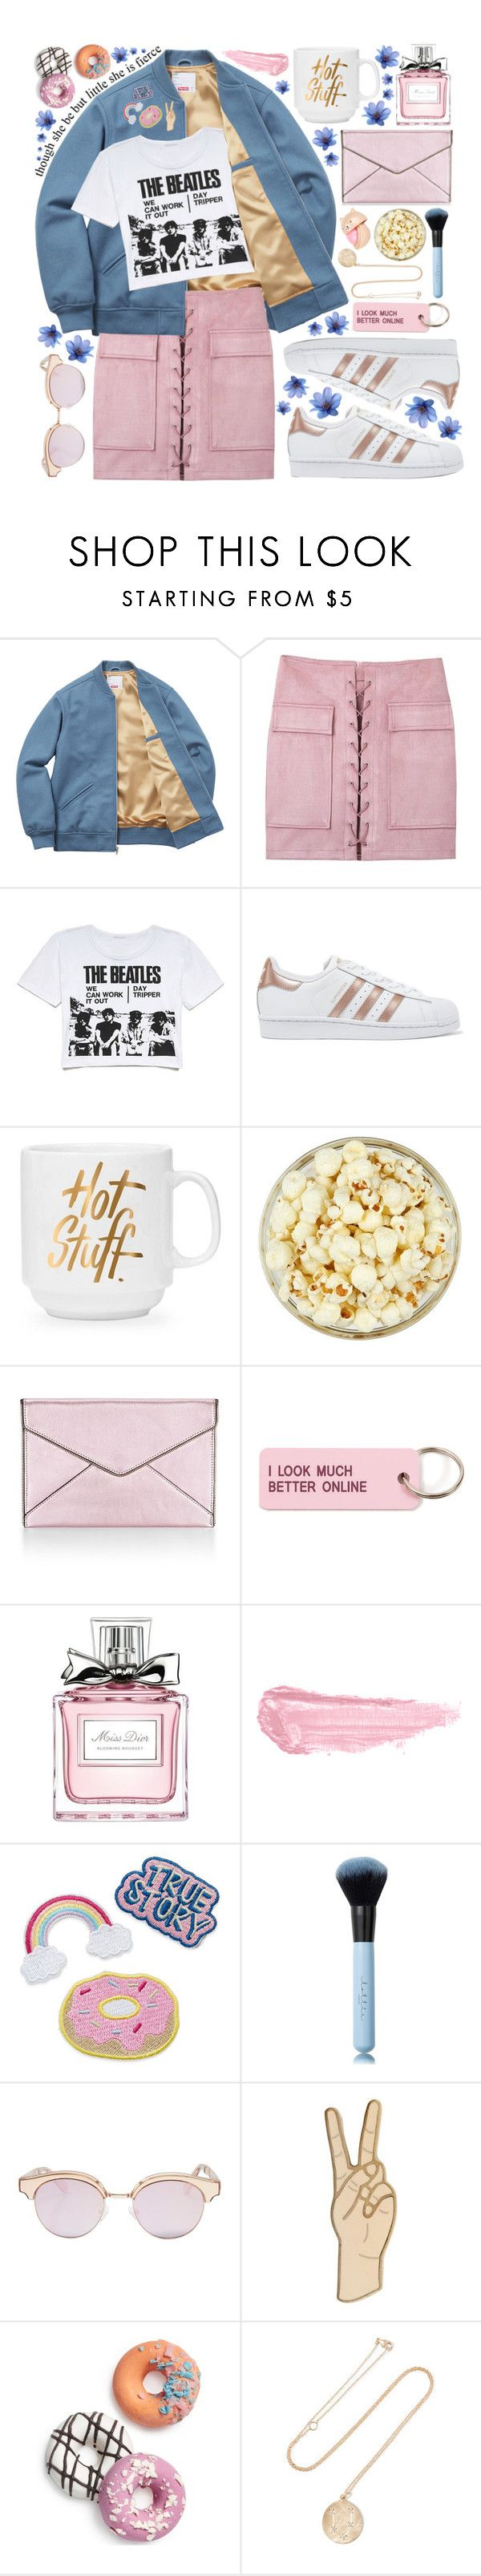 """""""1O5. I wish you could live every day the same way twice"""" by misspyromaniac ❤ liked on Polyvore featuring Retrò, adidas Originals, Rebecca Minkoff, Various Projects, Christian Dior, By Terry, Le Specs, Lucky Brand, Celebrate Shop and BROOKE GREGSON"""